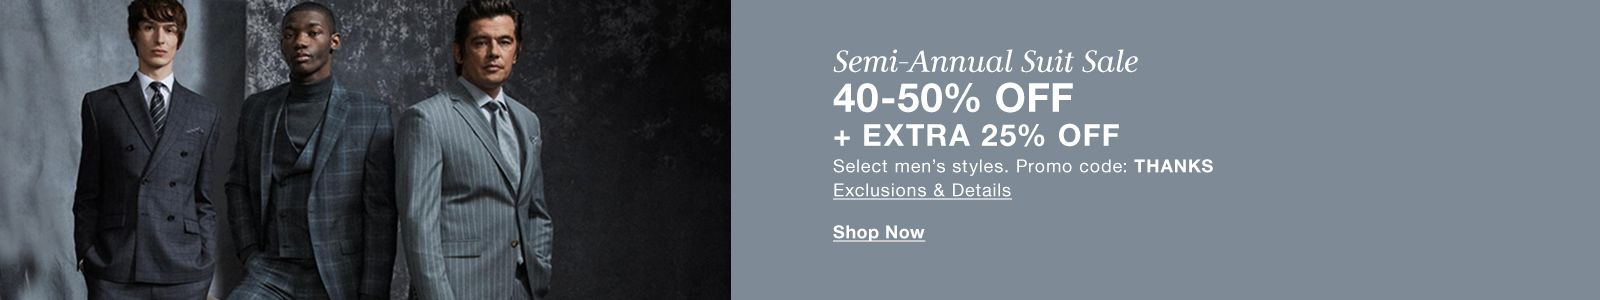 Semi-Annual Suit Sale, 40-50 percent off + Extra25 percent off, Select men's styles, Promo  code: THANKS, Exclusions and Details, Shop Now